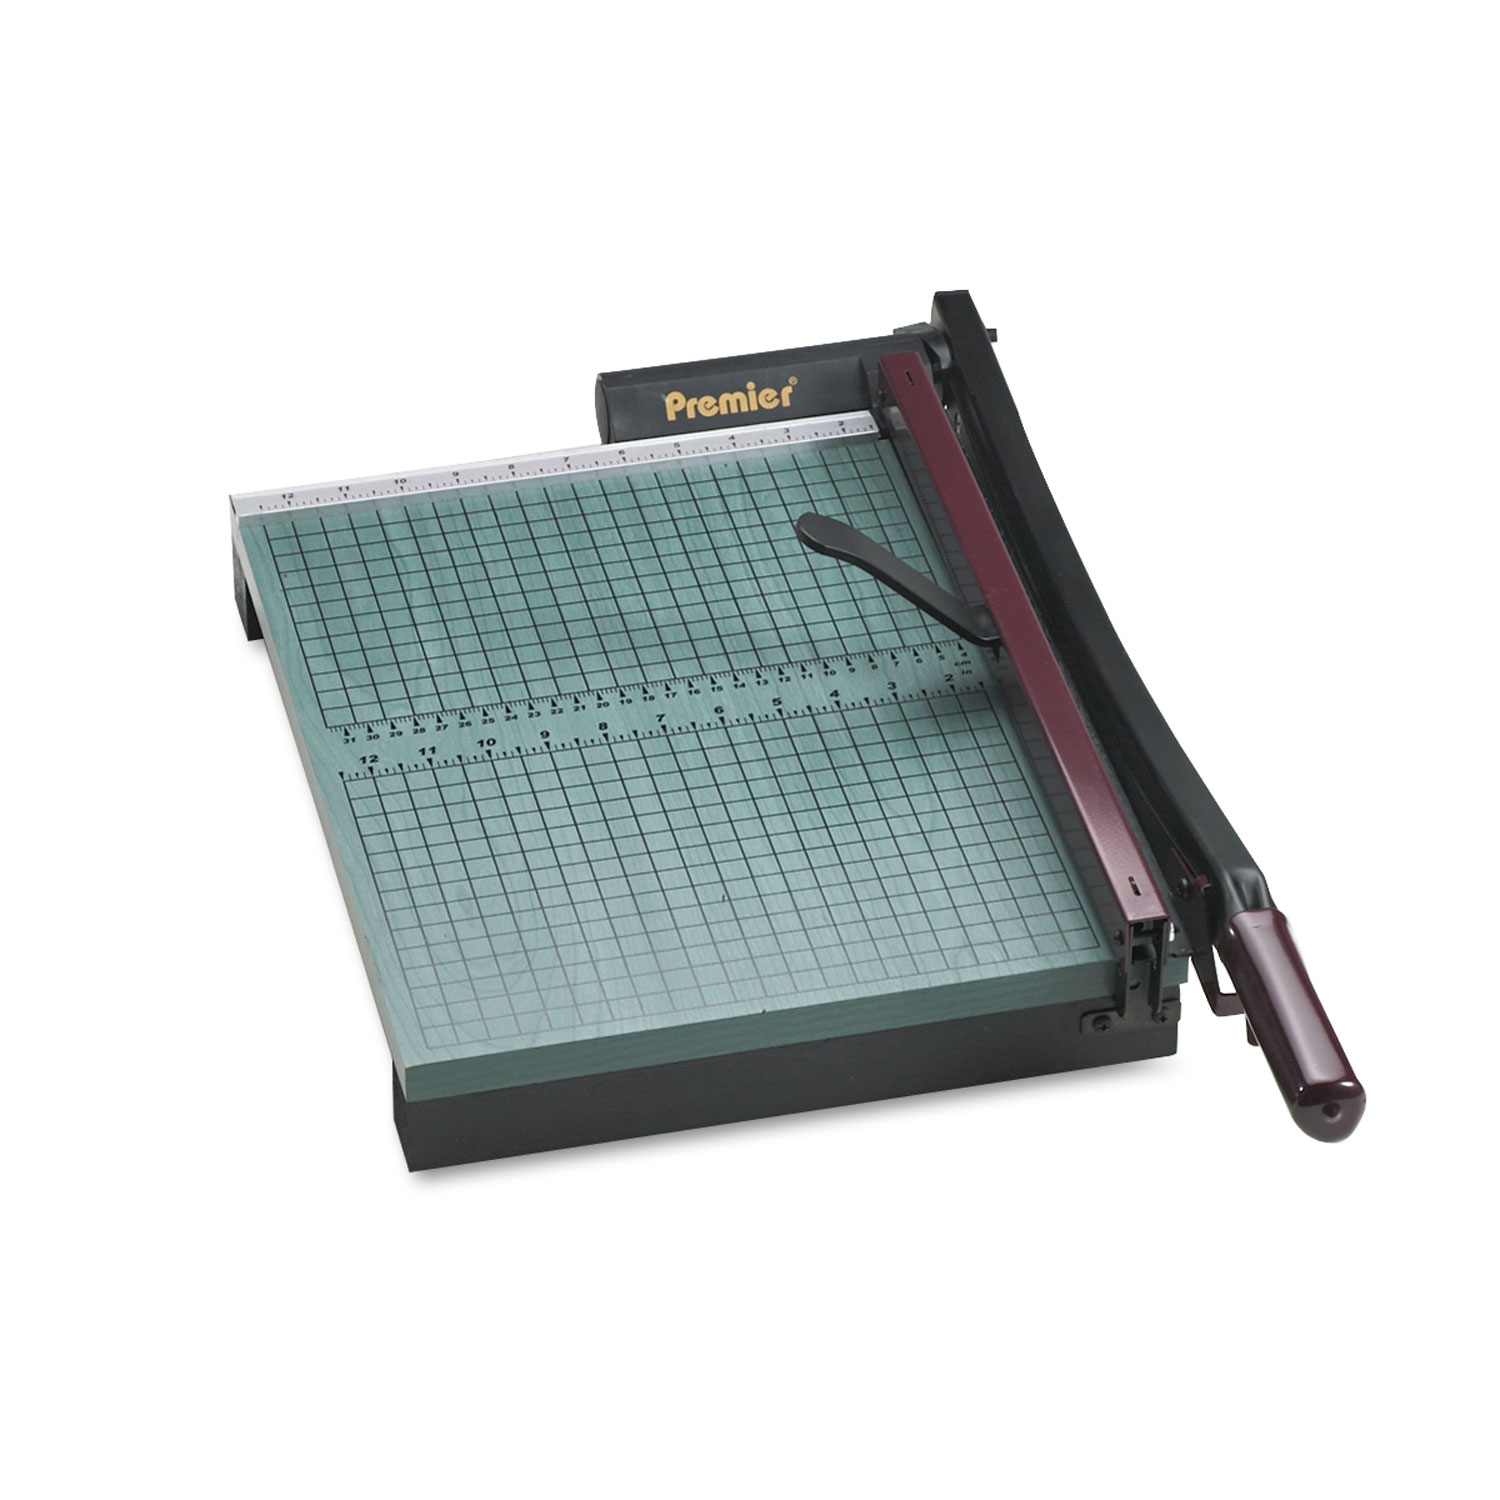 Browse StakCutTM 30 Sheet Paper Trimmer And Other Boards